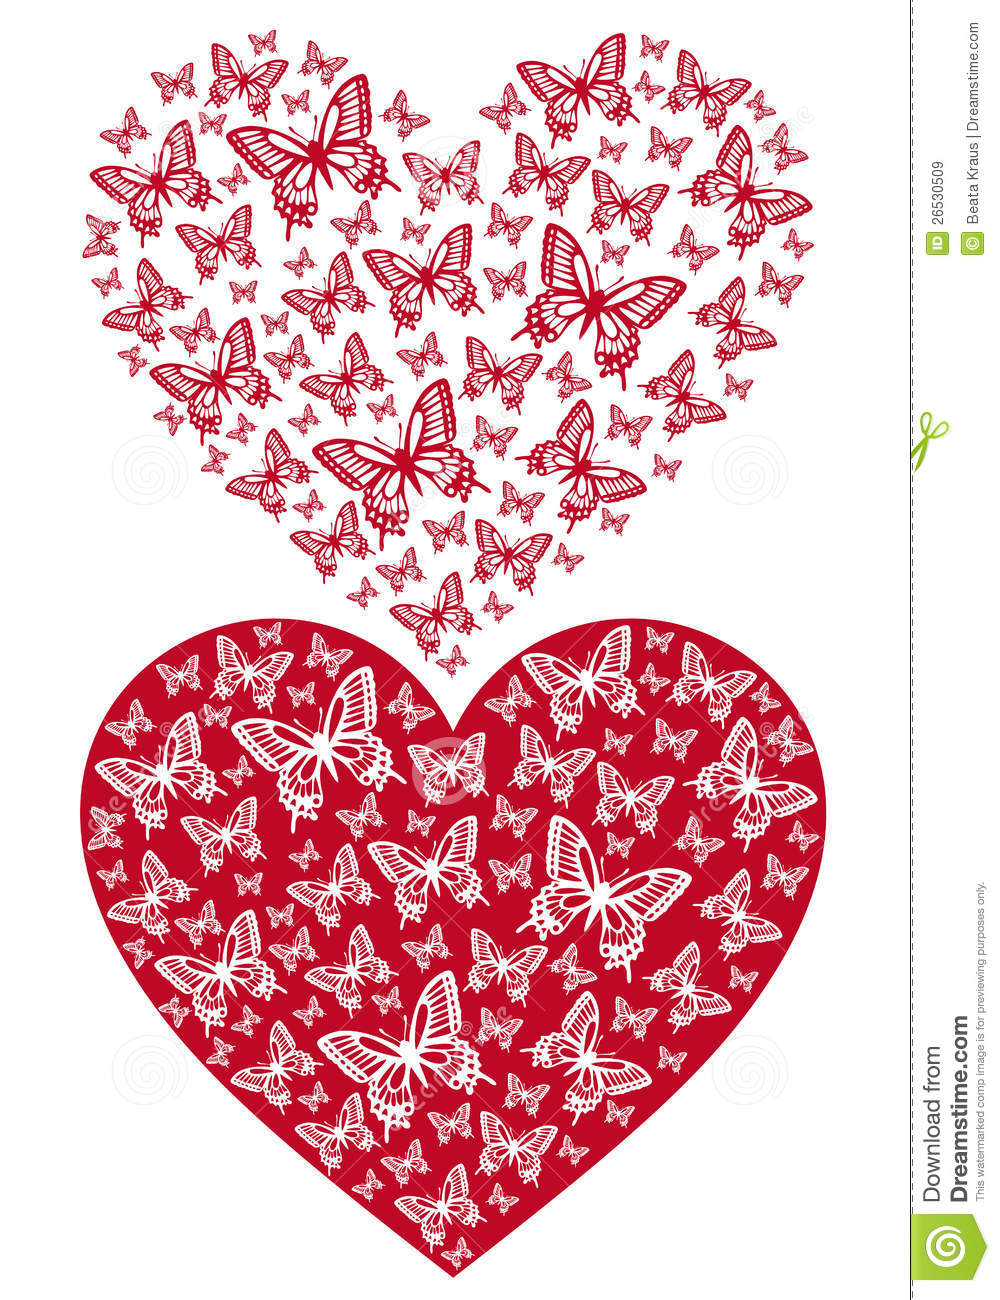 Free butterfly hearts clipart clip art freeuse download Red Butterfly Heart, Vector Royalty Free Stock Images - Image ... clip art freeuse download